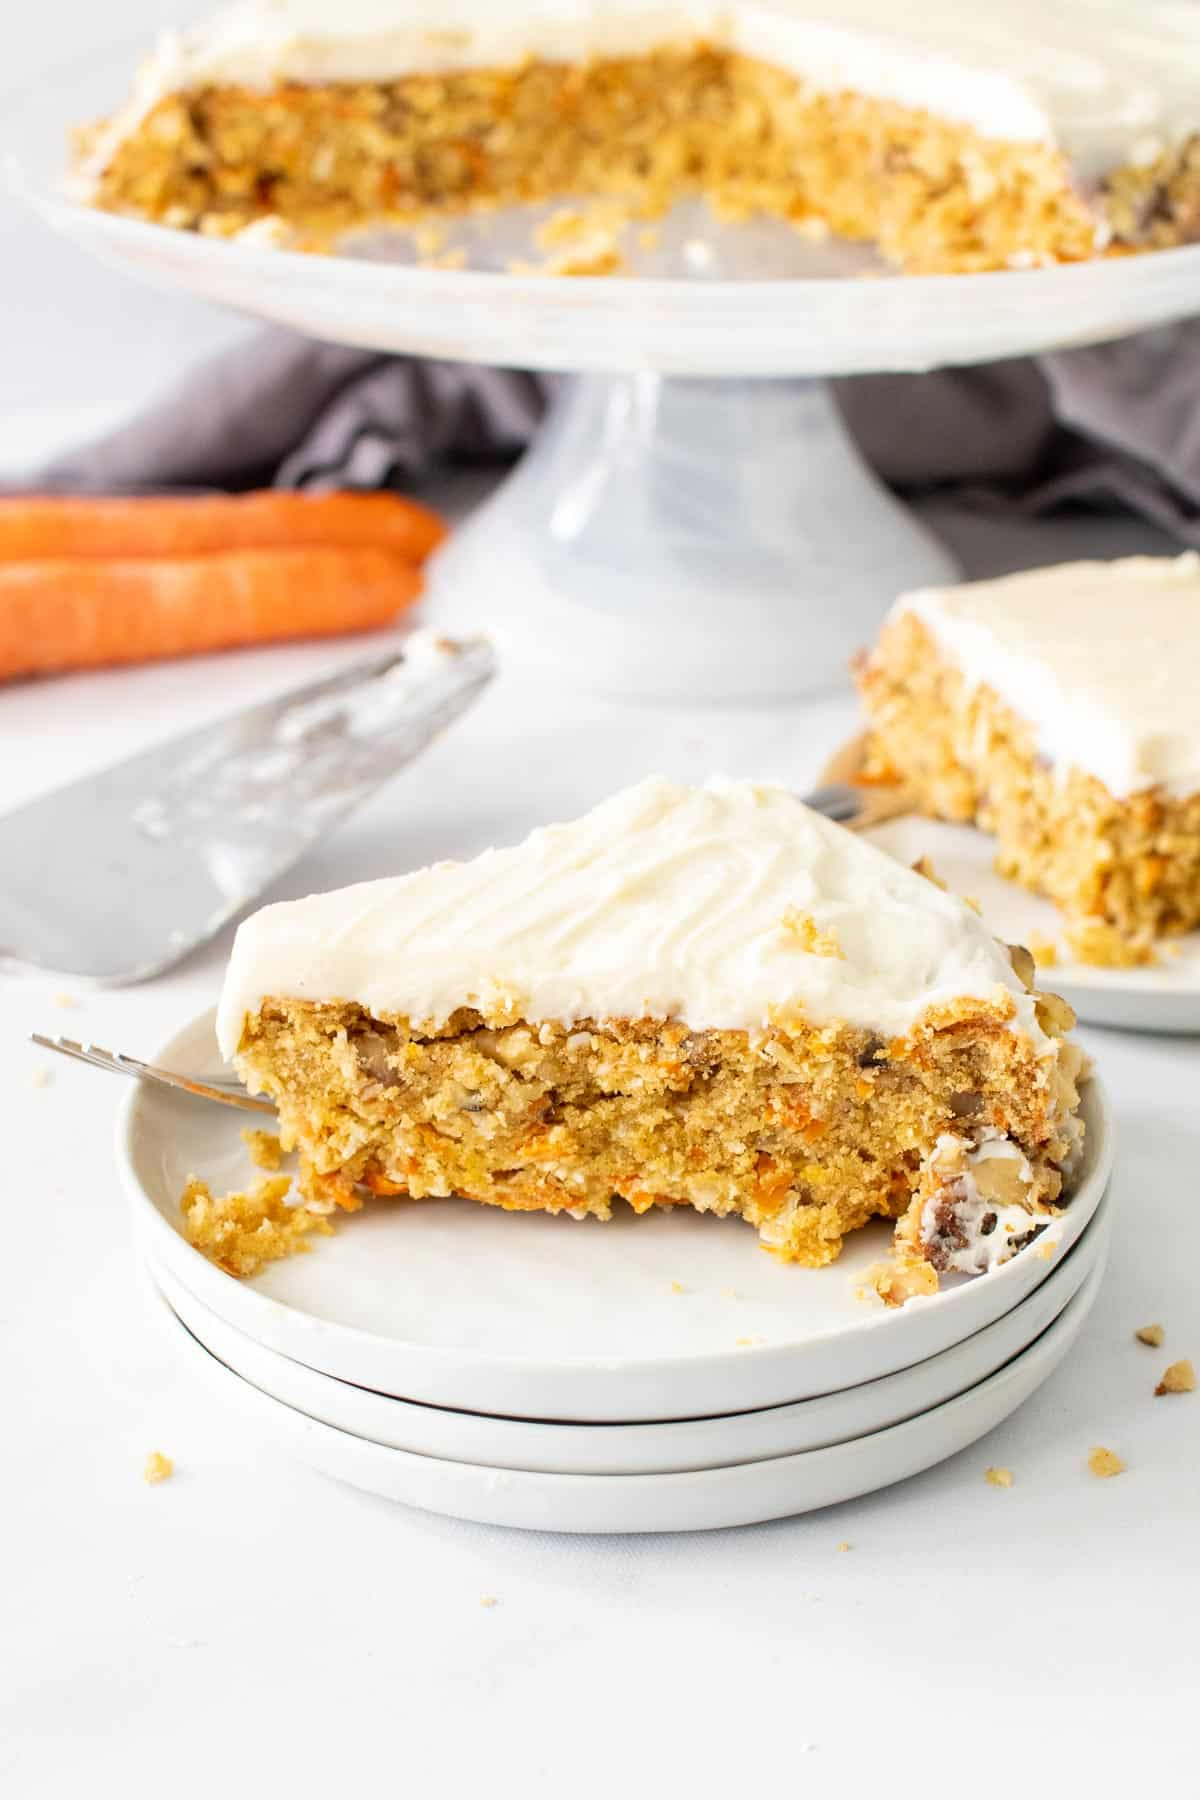 A slice of keto carrot cake on a white plate with the full cake on a cake stand in the background